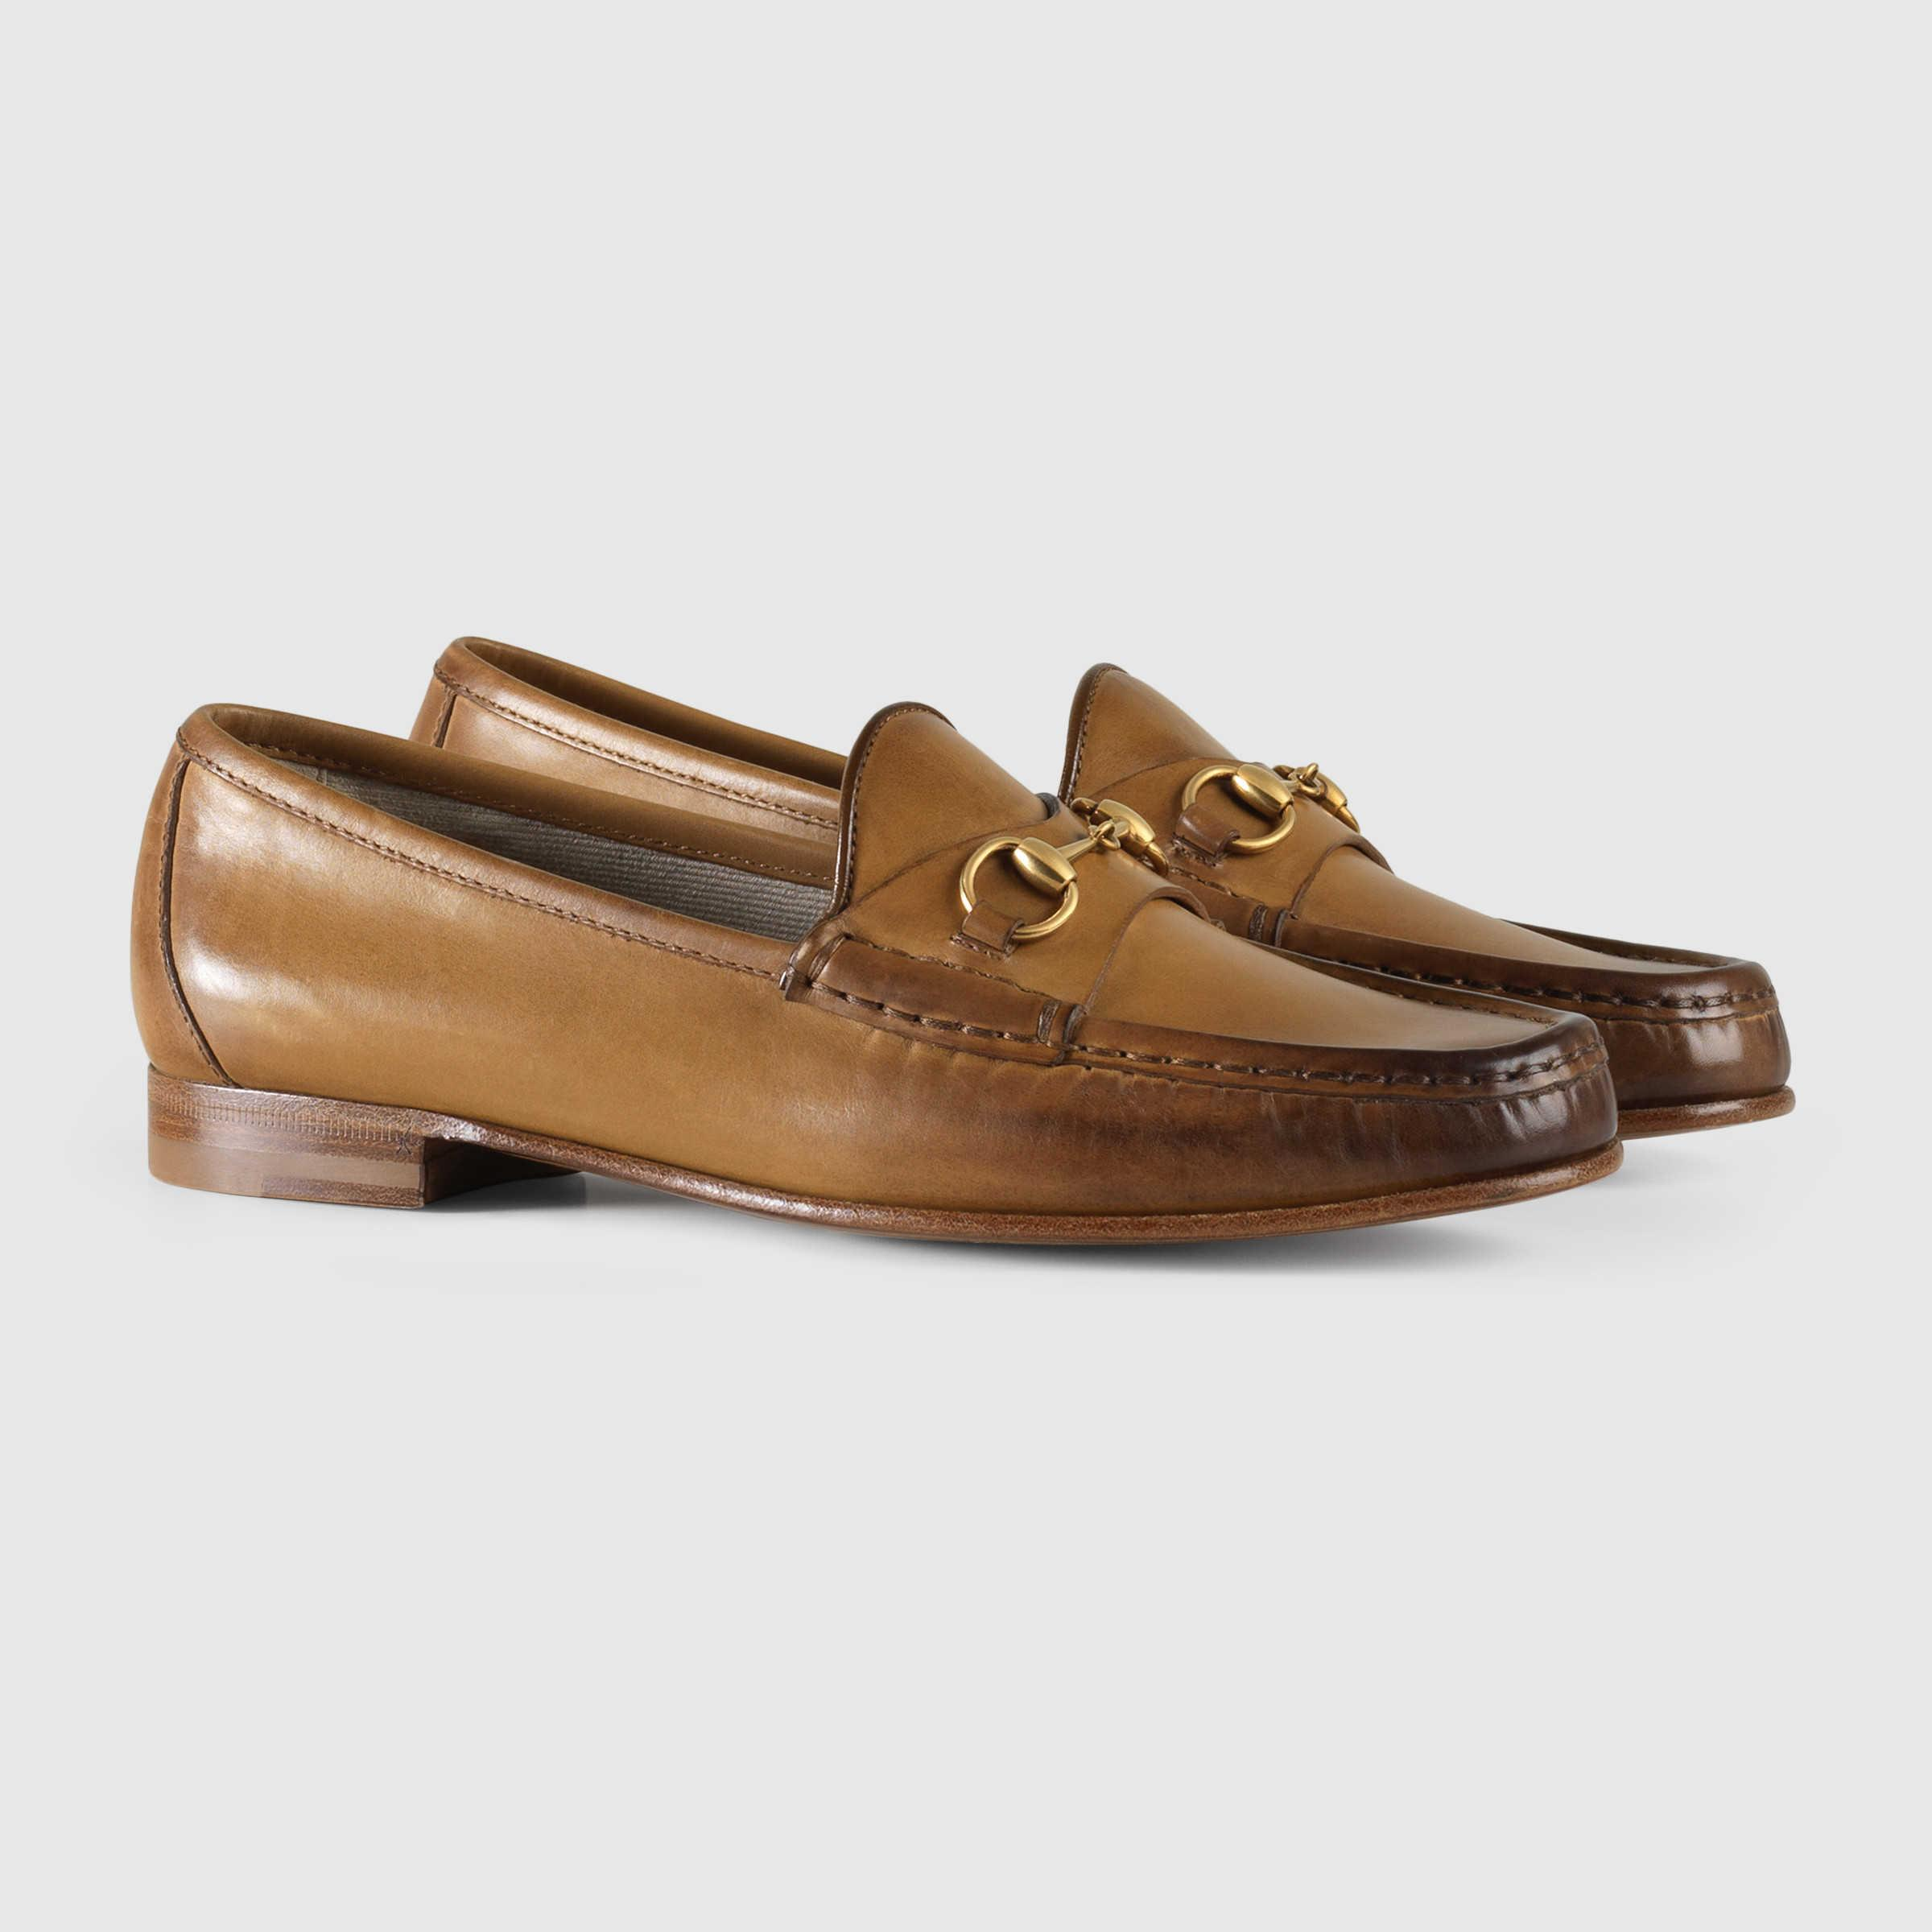 b912cd5cfd6 Lyst - Gucci 1953 Horsebit Loafer In Leather in Brown